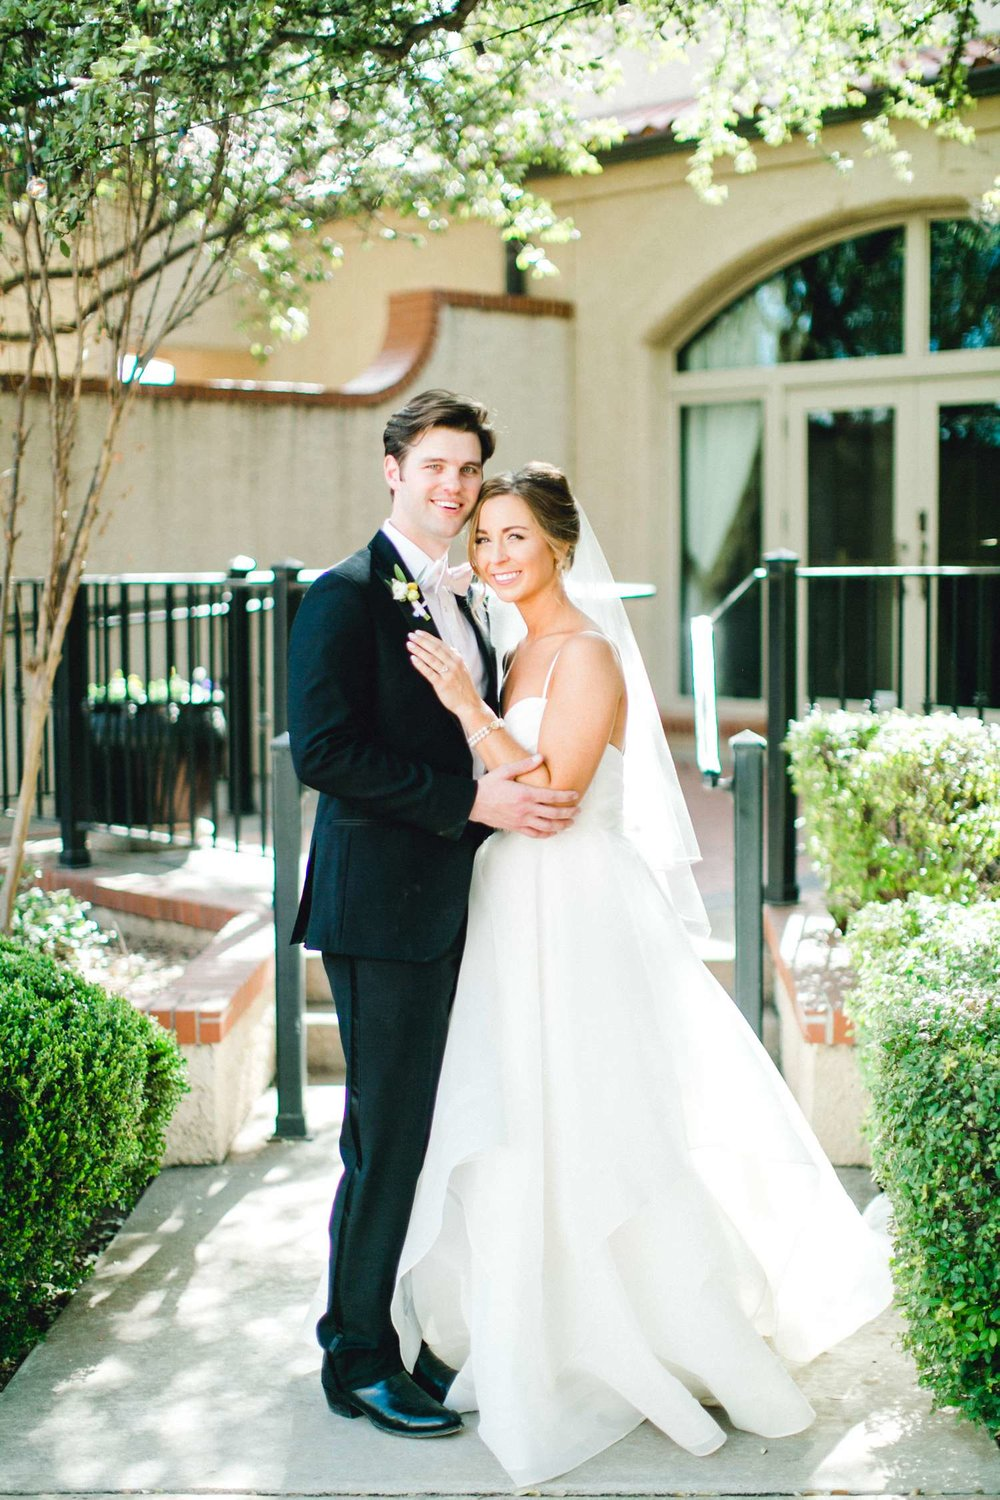 MARLEE+LLOYD+MORGAN+ALLEEJ+TEXAS+TECH+MERKET+ALUMNI+WEDDINGS+LUBBOCK+WEST+TABLE+CLASSIC+SPAIN_0101.jpg